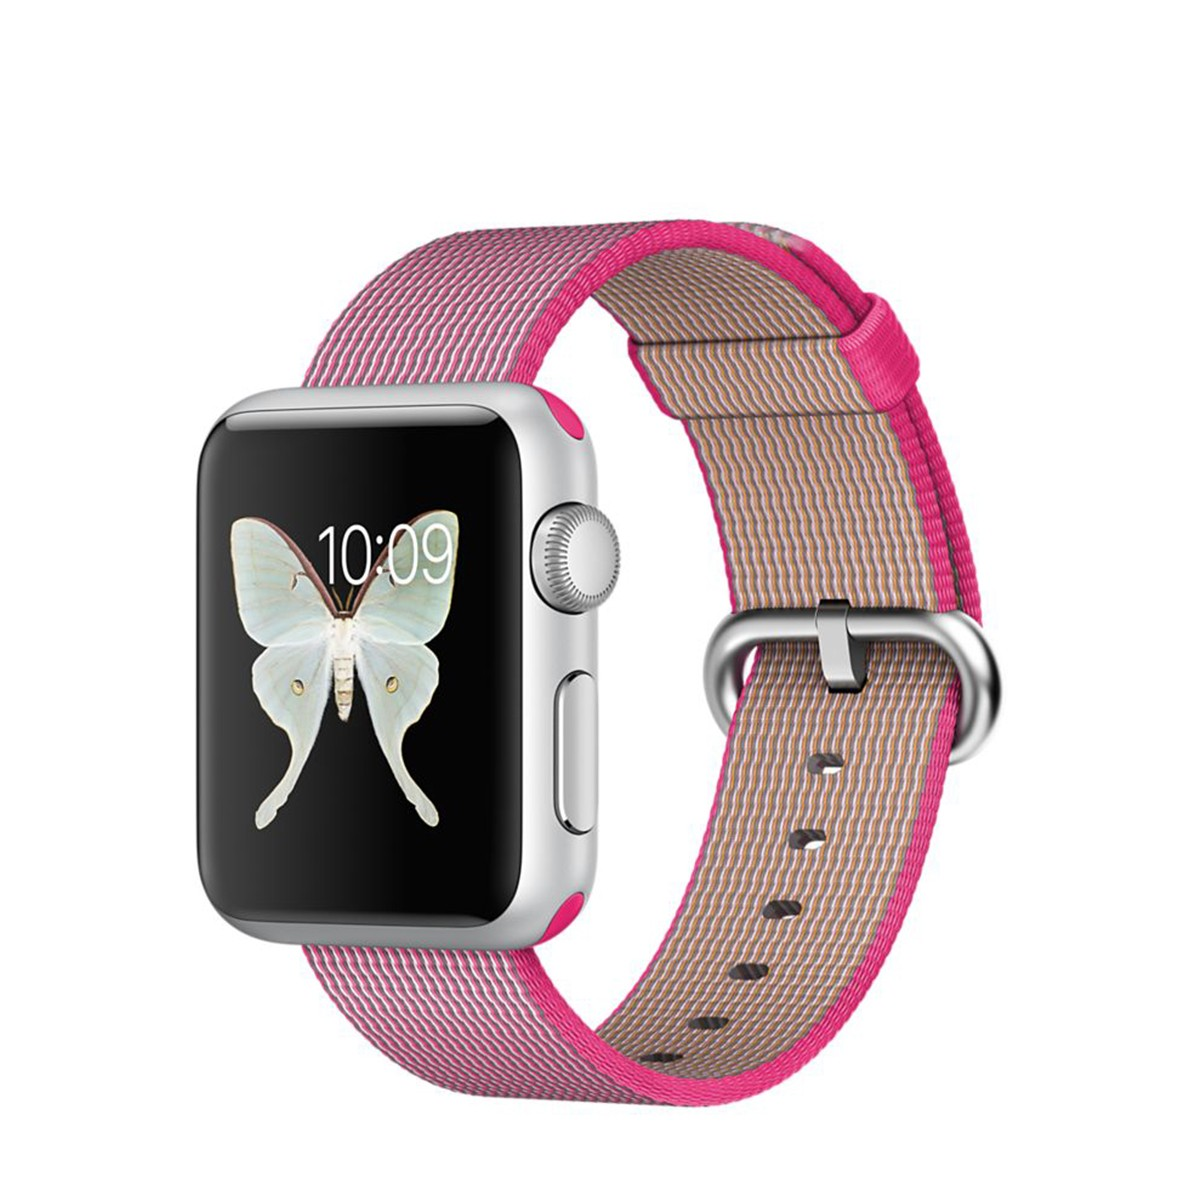 Apple Watch Sport 38 mm Silver Aluminum Case s Pink Woven Nylon